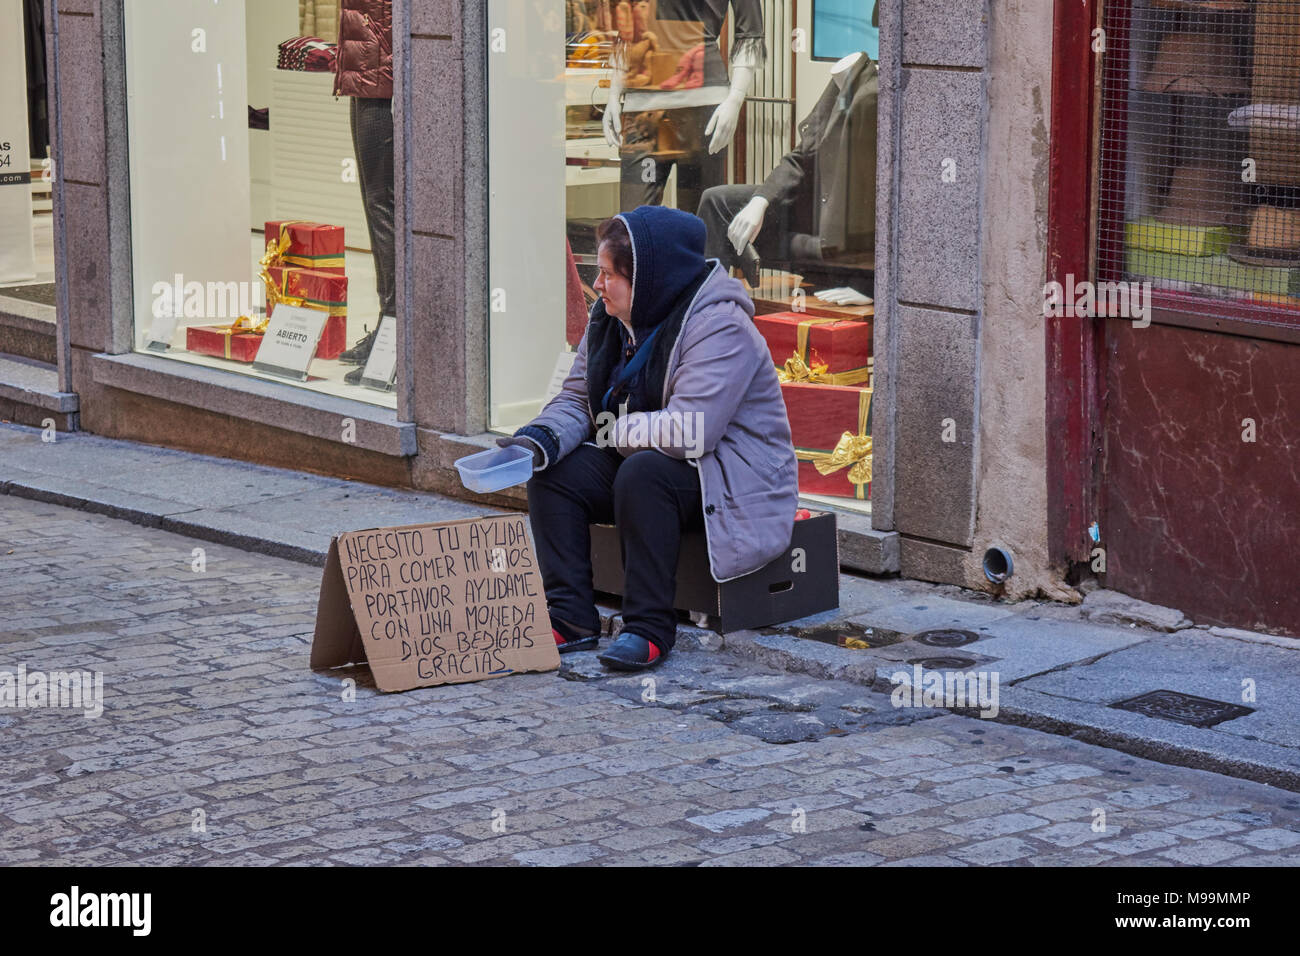 Homeless street children stock photos homeless street - Mmp living espana ...